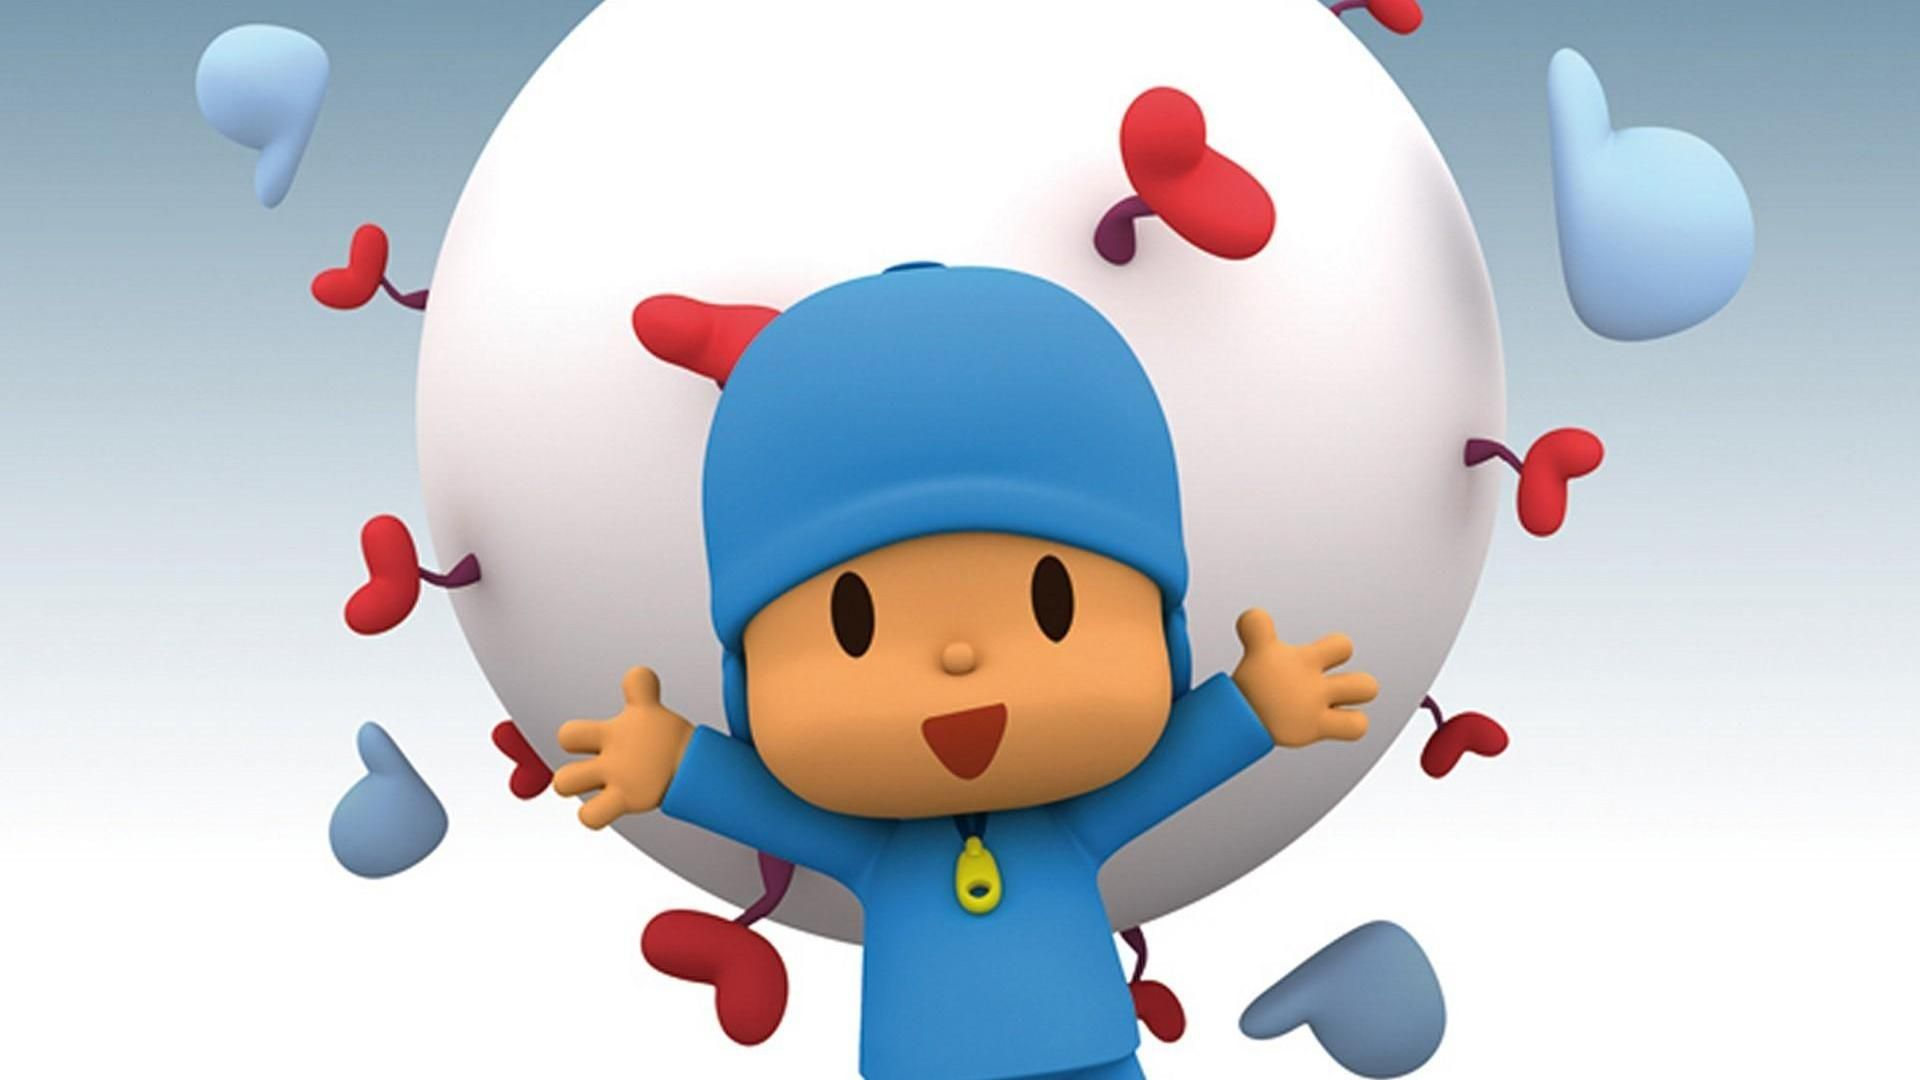 Pocoyo Character With Images